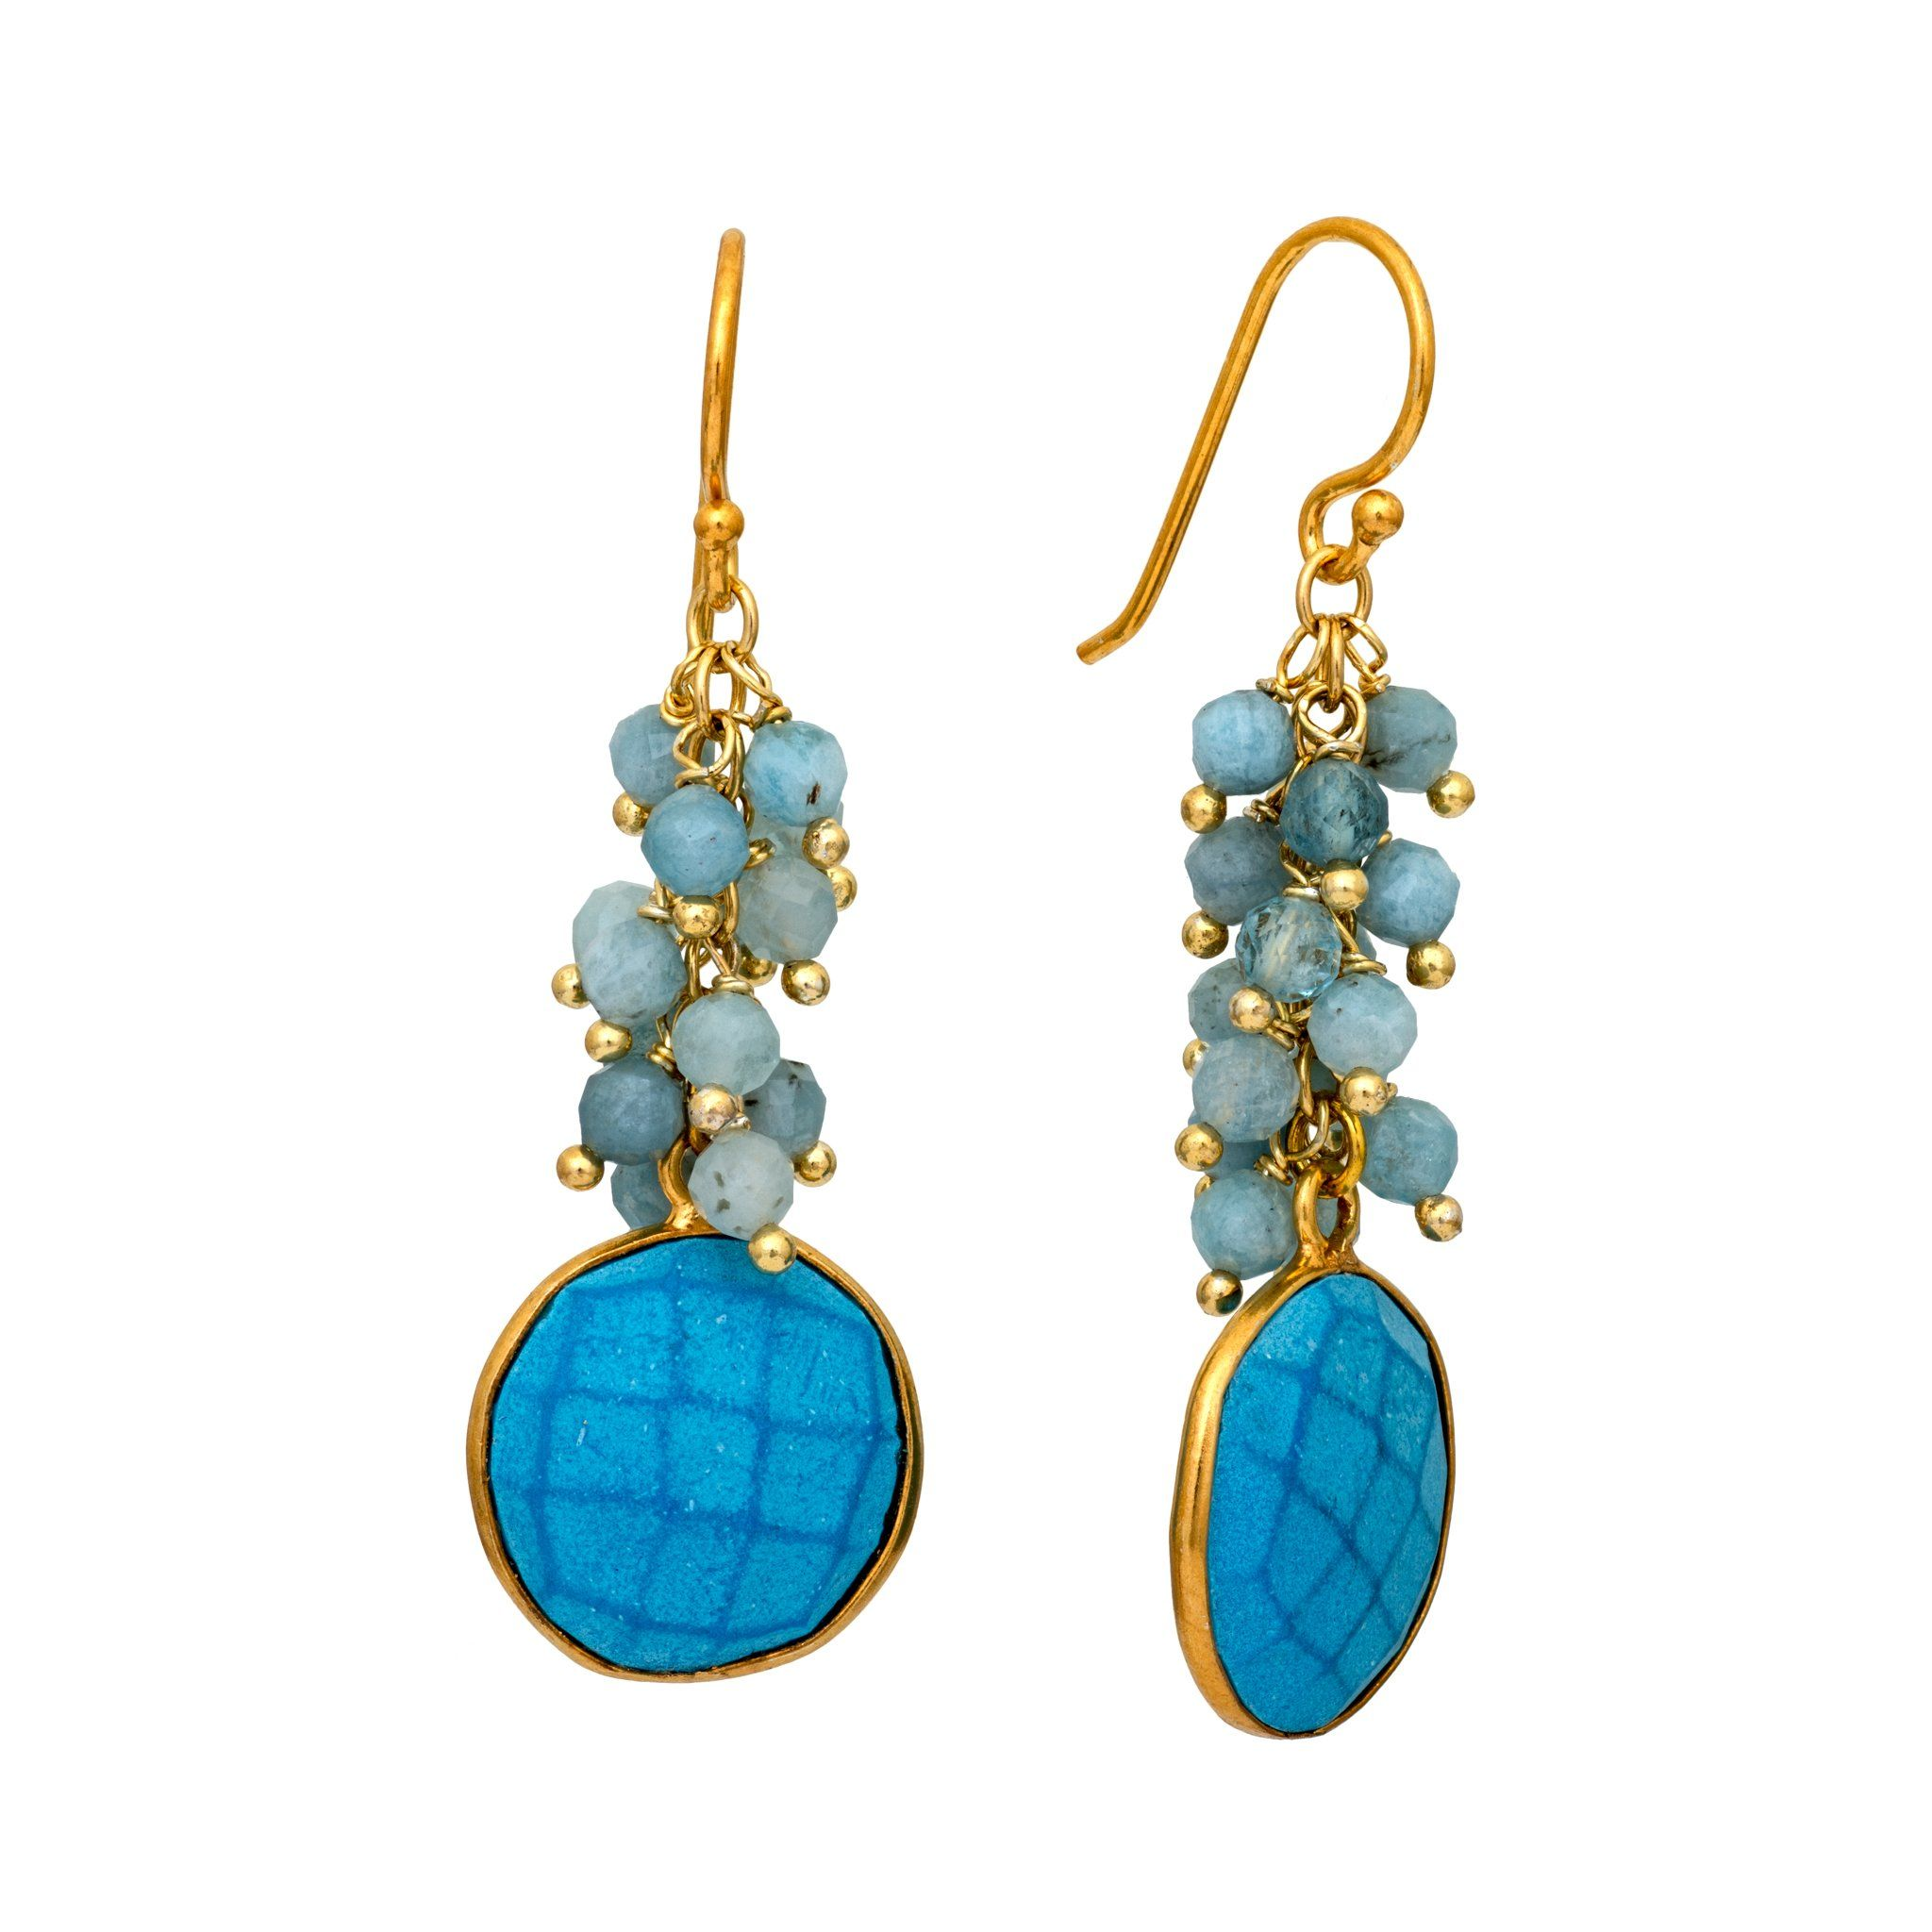 KAI turquoise cluster earrings